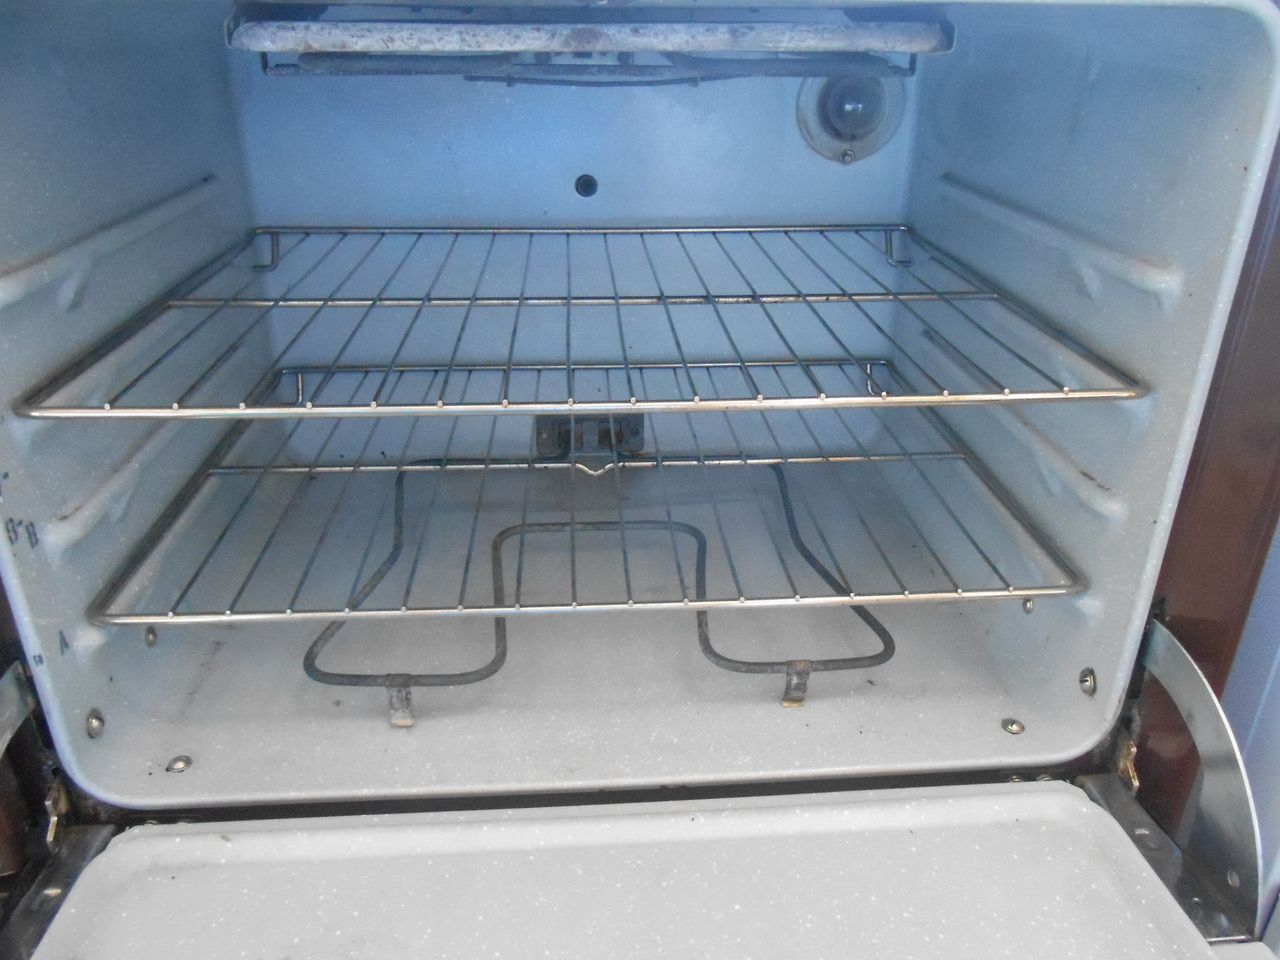 40 Inch Oven Range Part - 42: Appliance City - GE 40 INCH VINTAGE CHOCOLATE BROWN ELECTRIC RANGE DOUBLE  OVEN COIL BURNERS 2